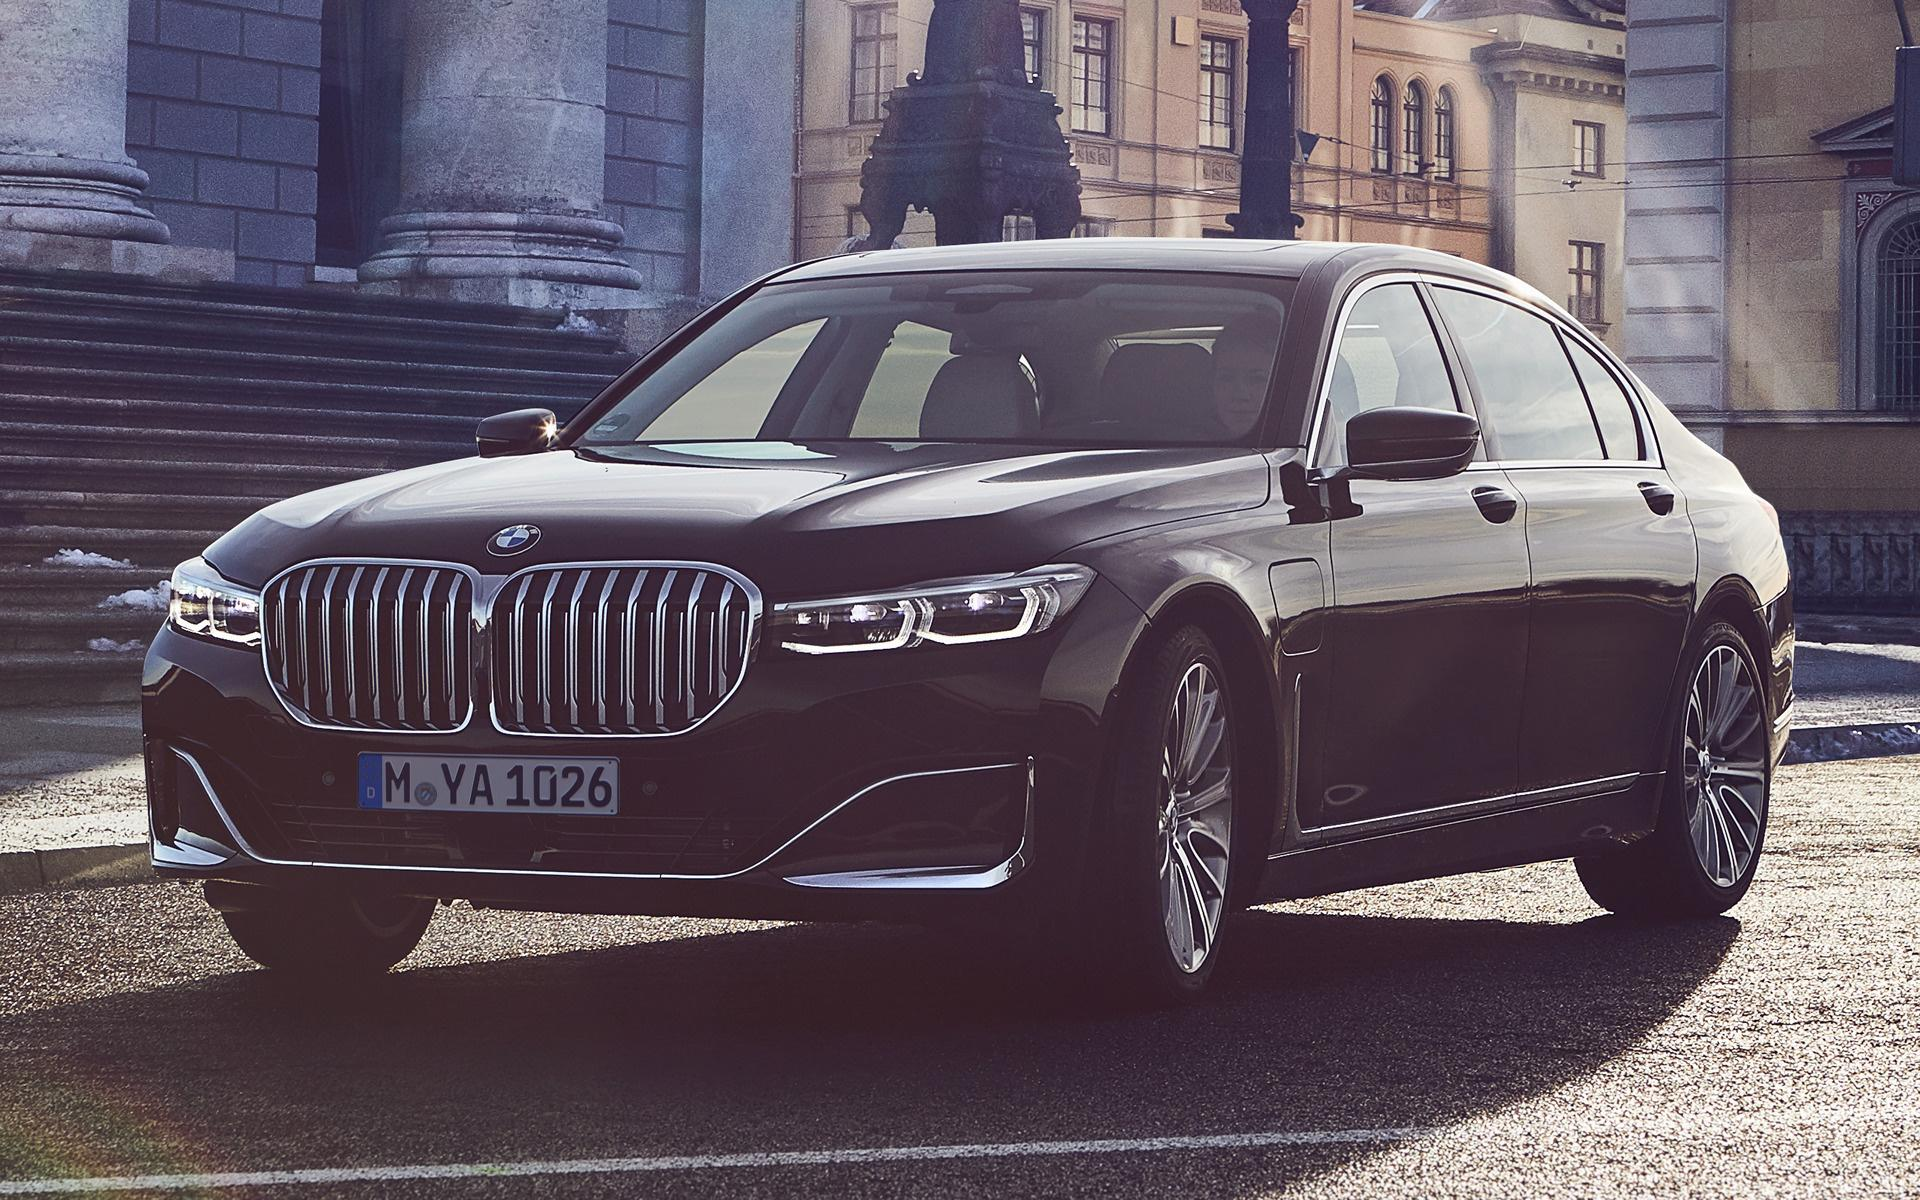 Bmw 7 Series 2019 Wallpapers Wallpaper Cave